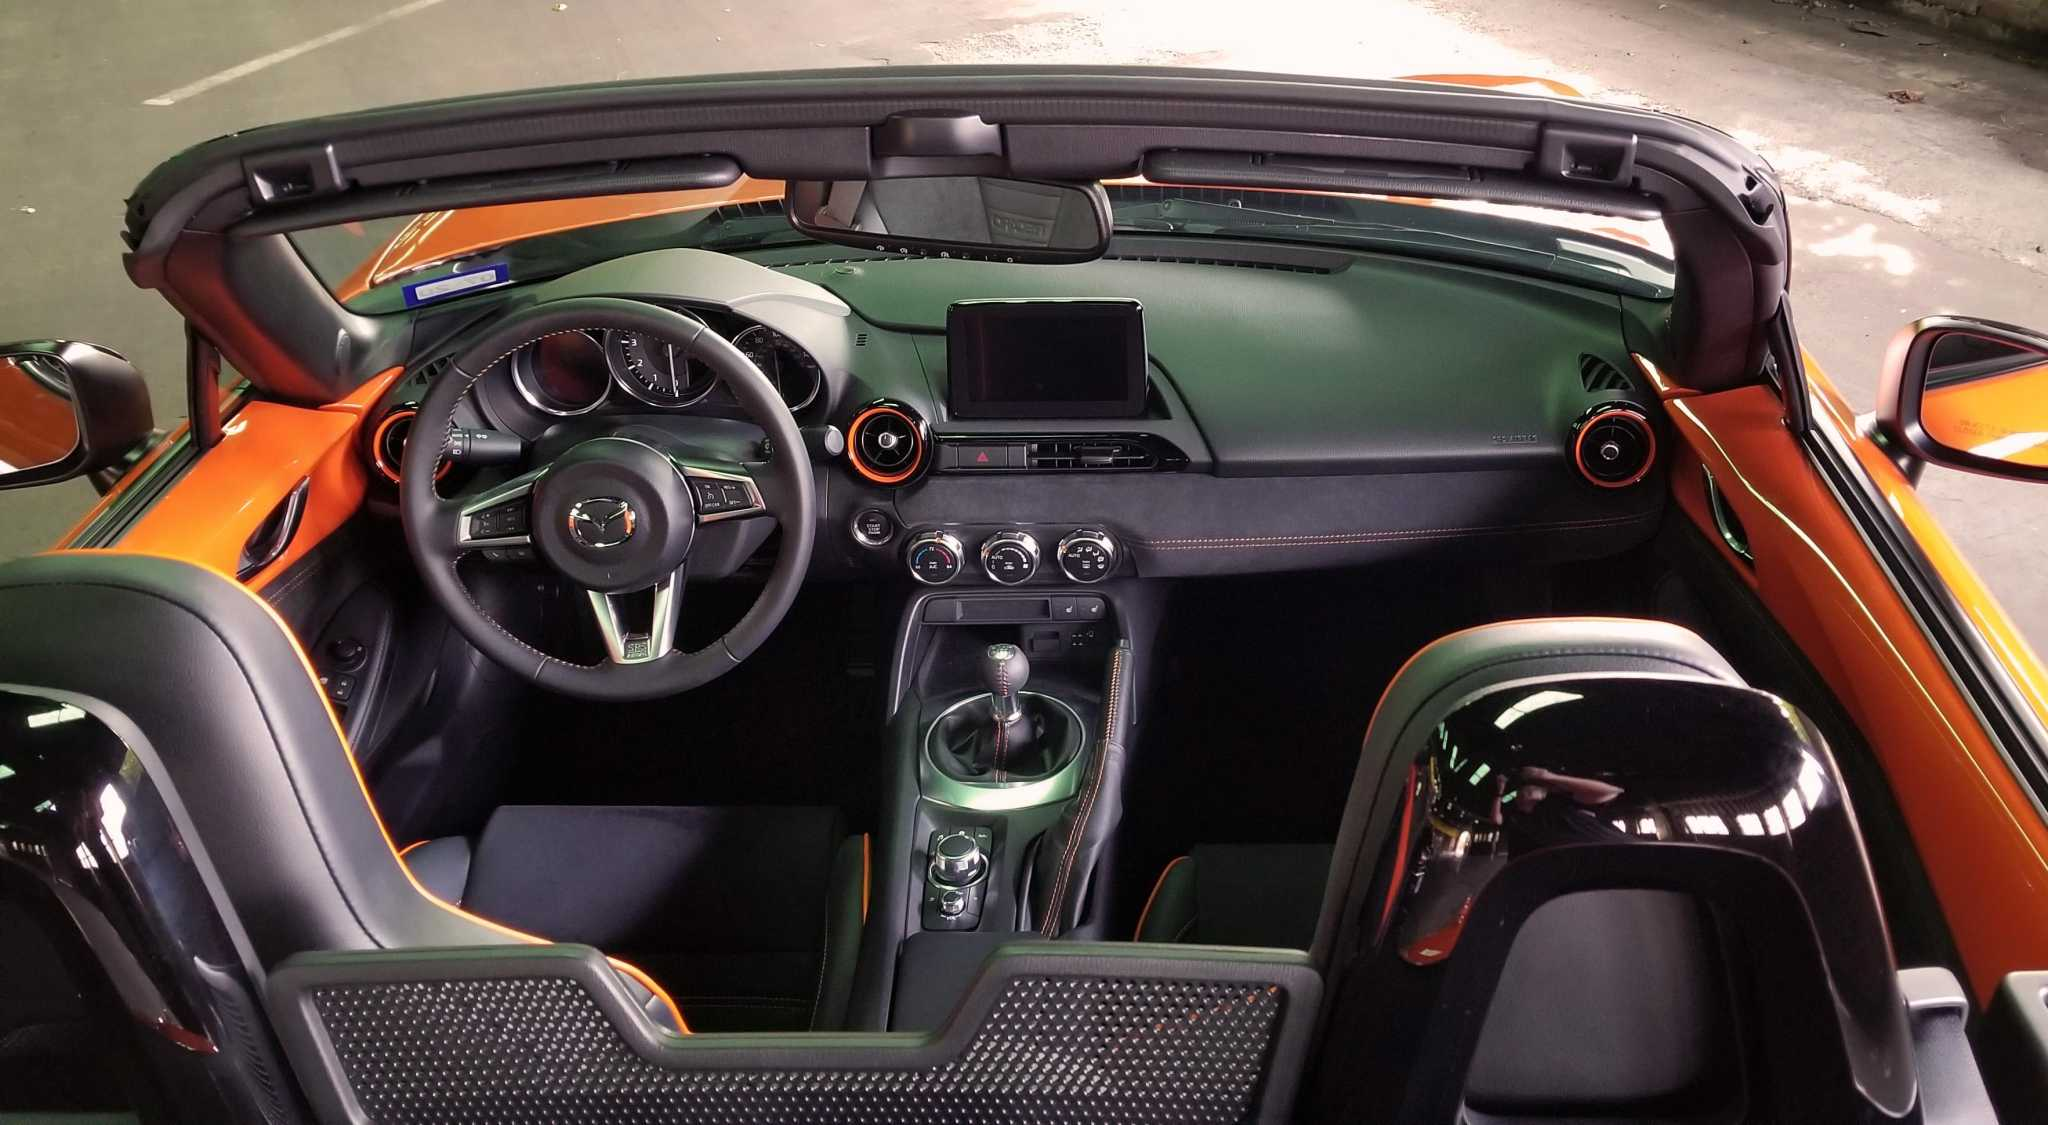 Dedicated fans get hands on their limited edition 30th anniversary MX-5 drop-tops